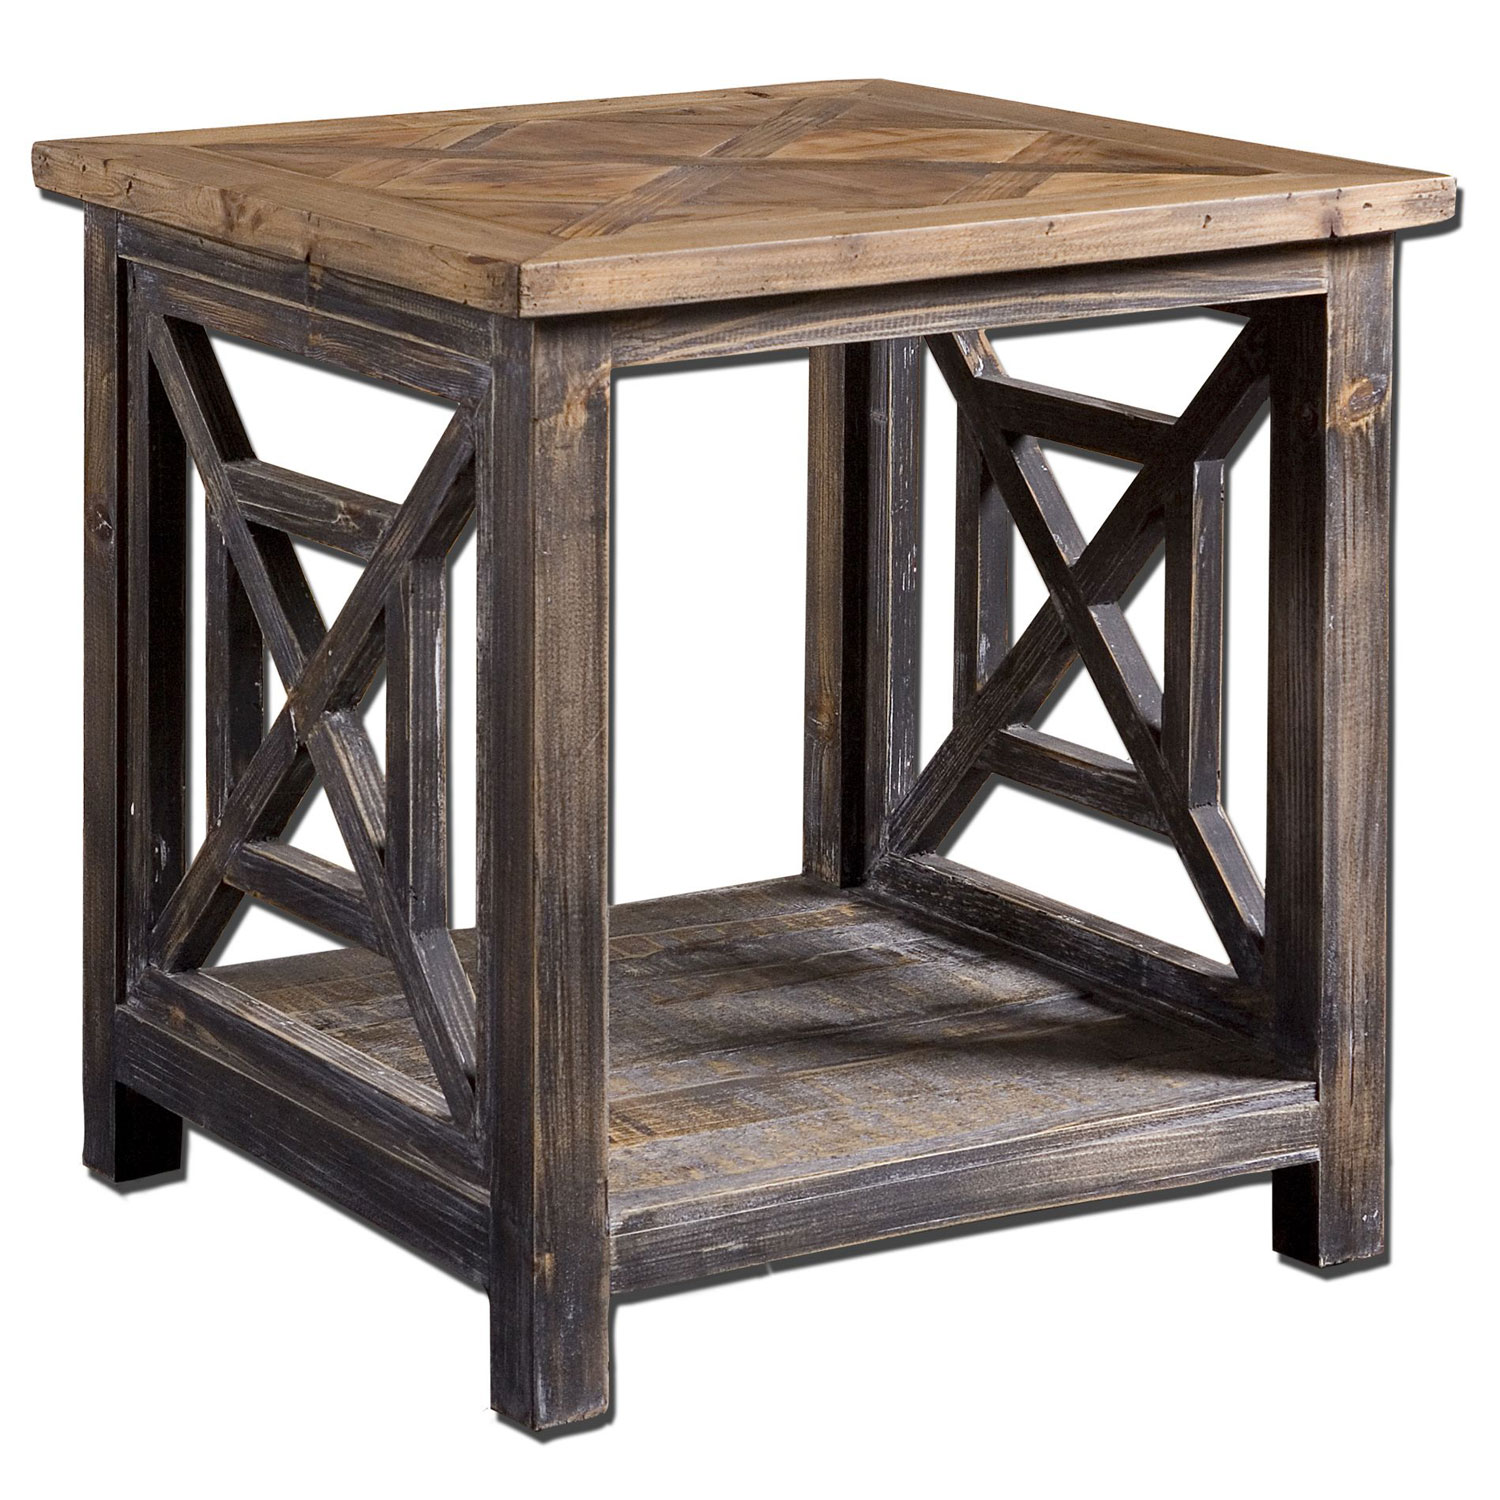 uttermost spiro fir wood end table bellacor blythe accent hover zoom cantilever patio umbrellas essential living room furniture dining sets for small spaces silver metal console